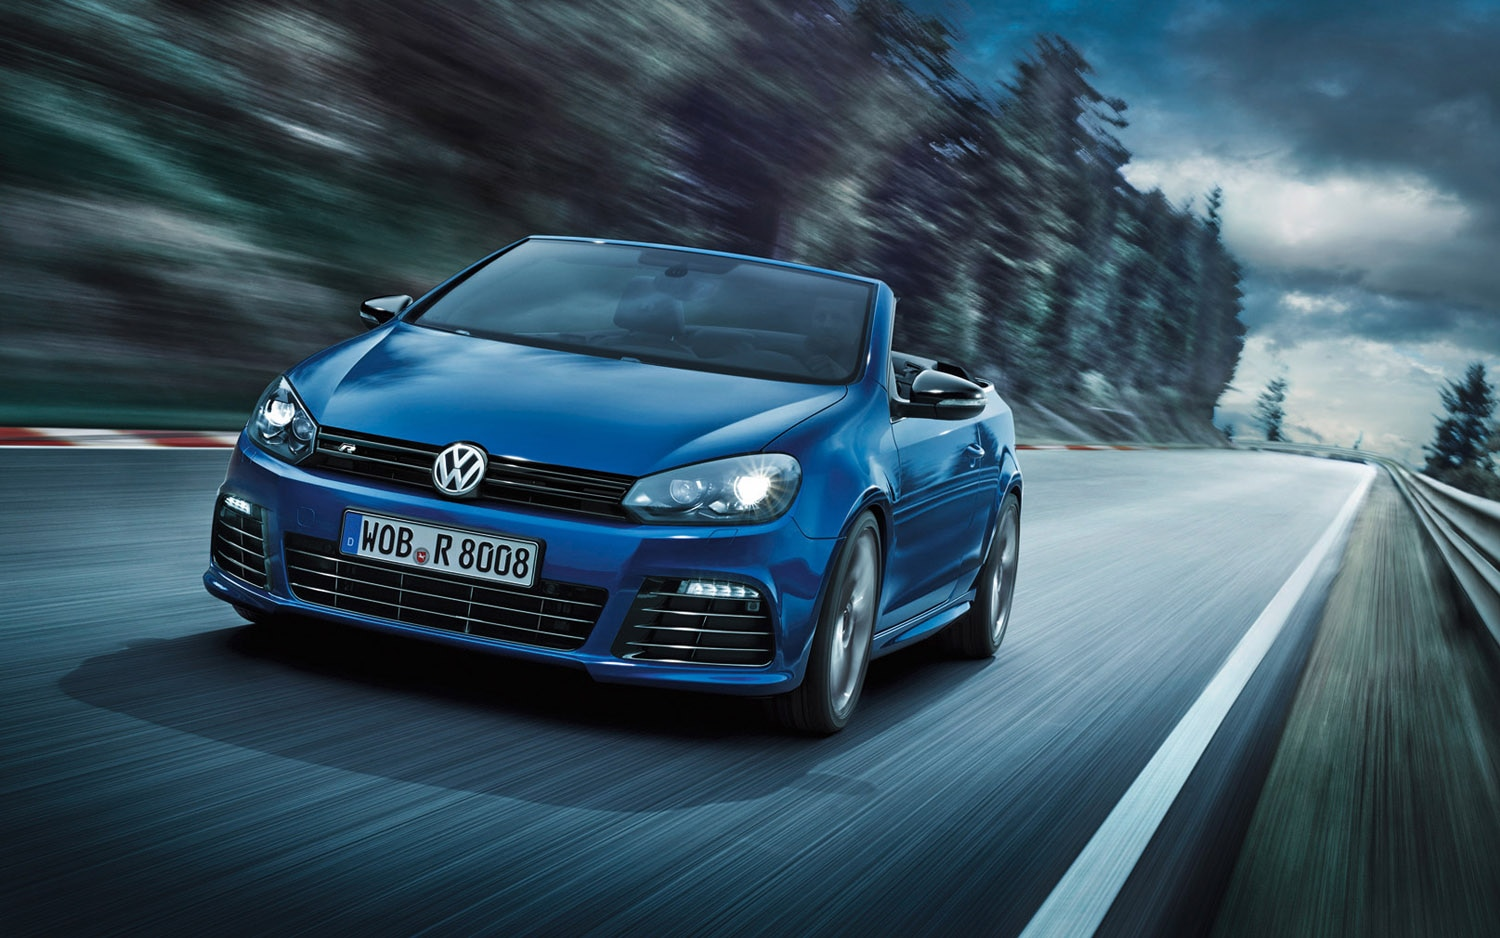 2014 VW Golf R Cabriolet Front Three Quarter 21